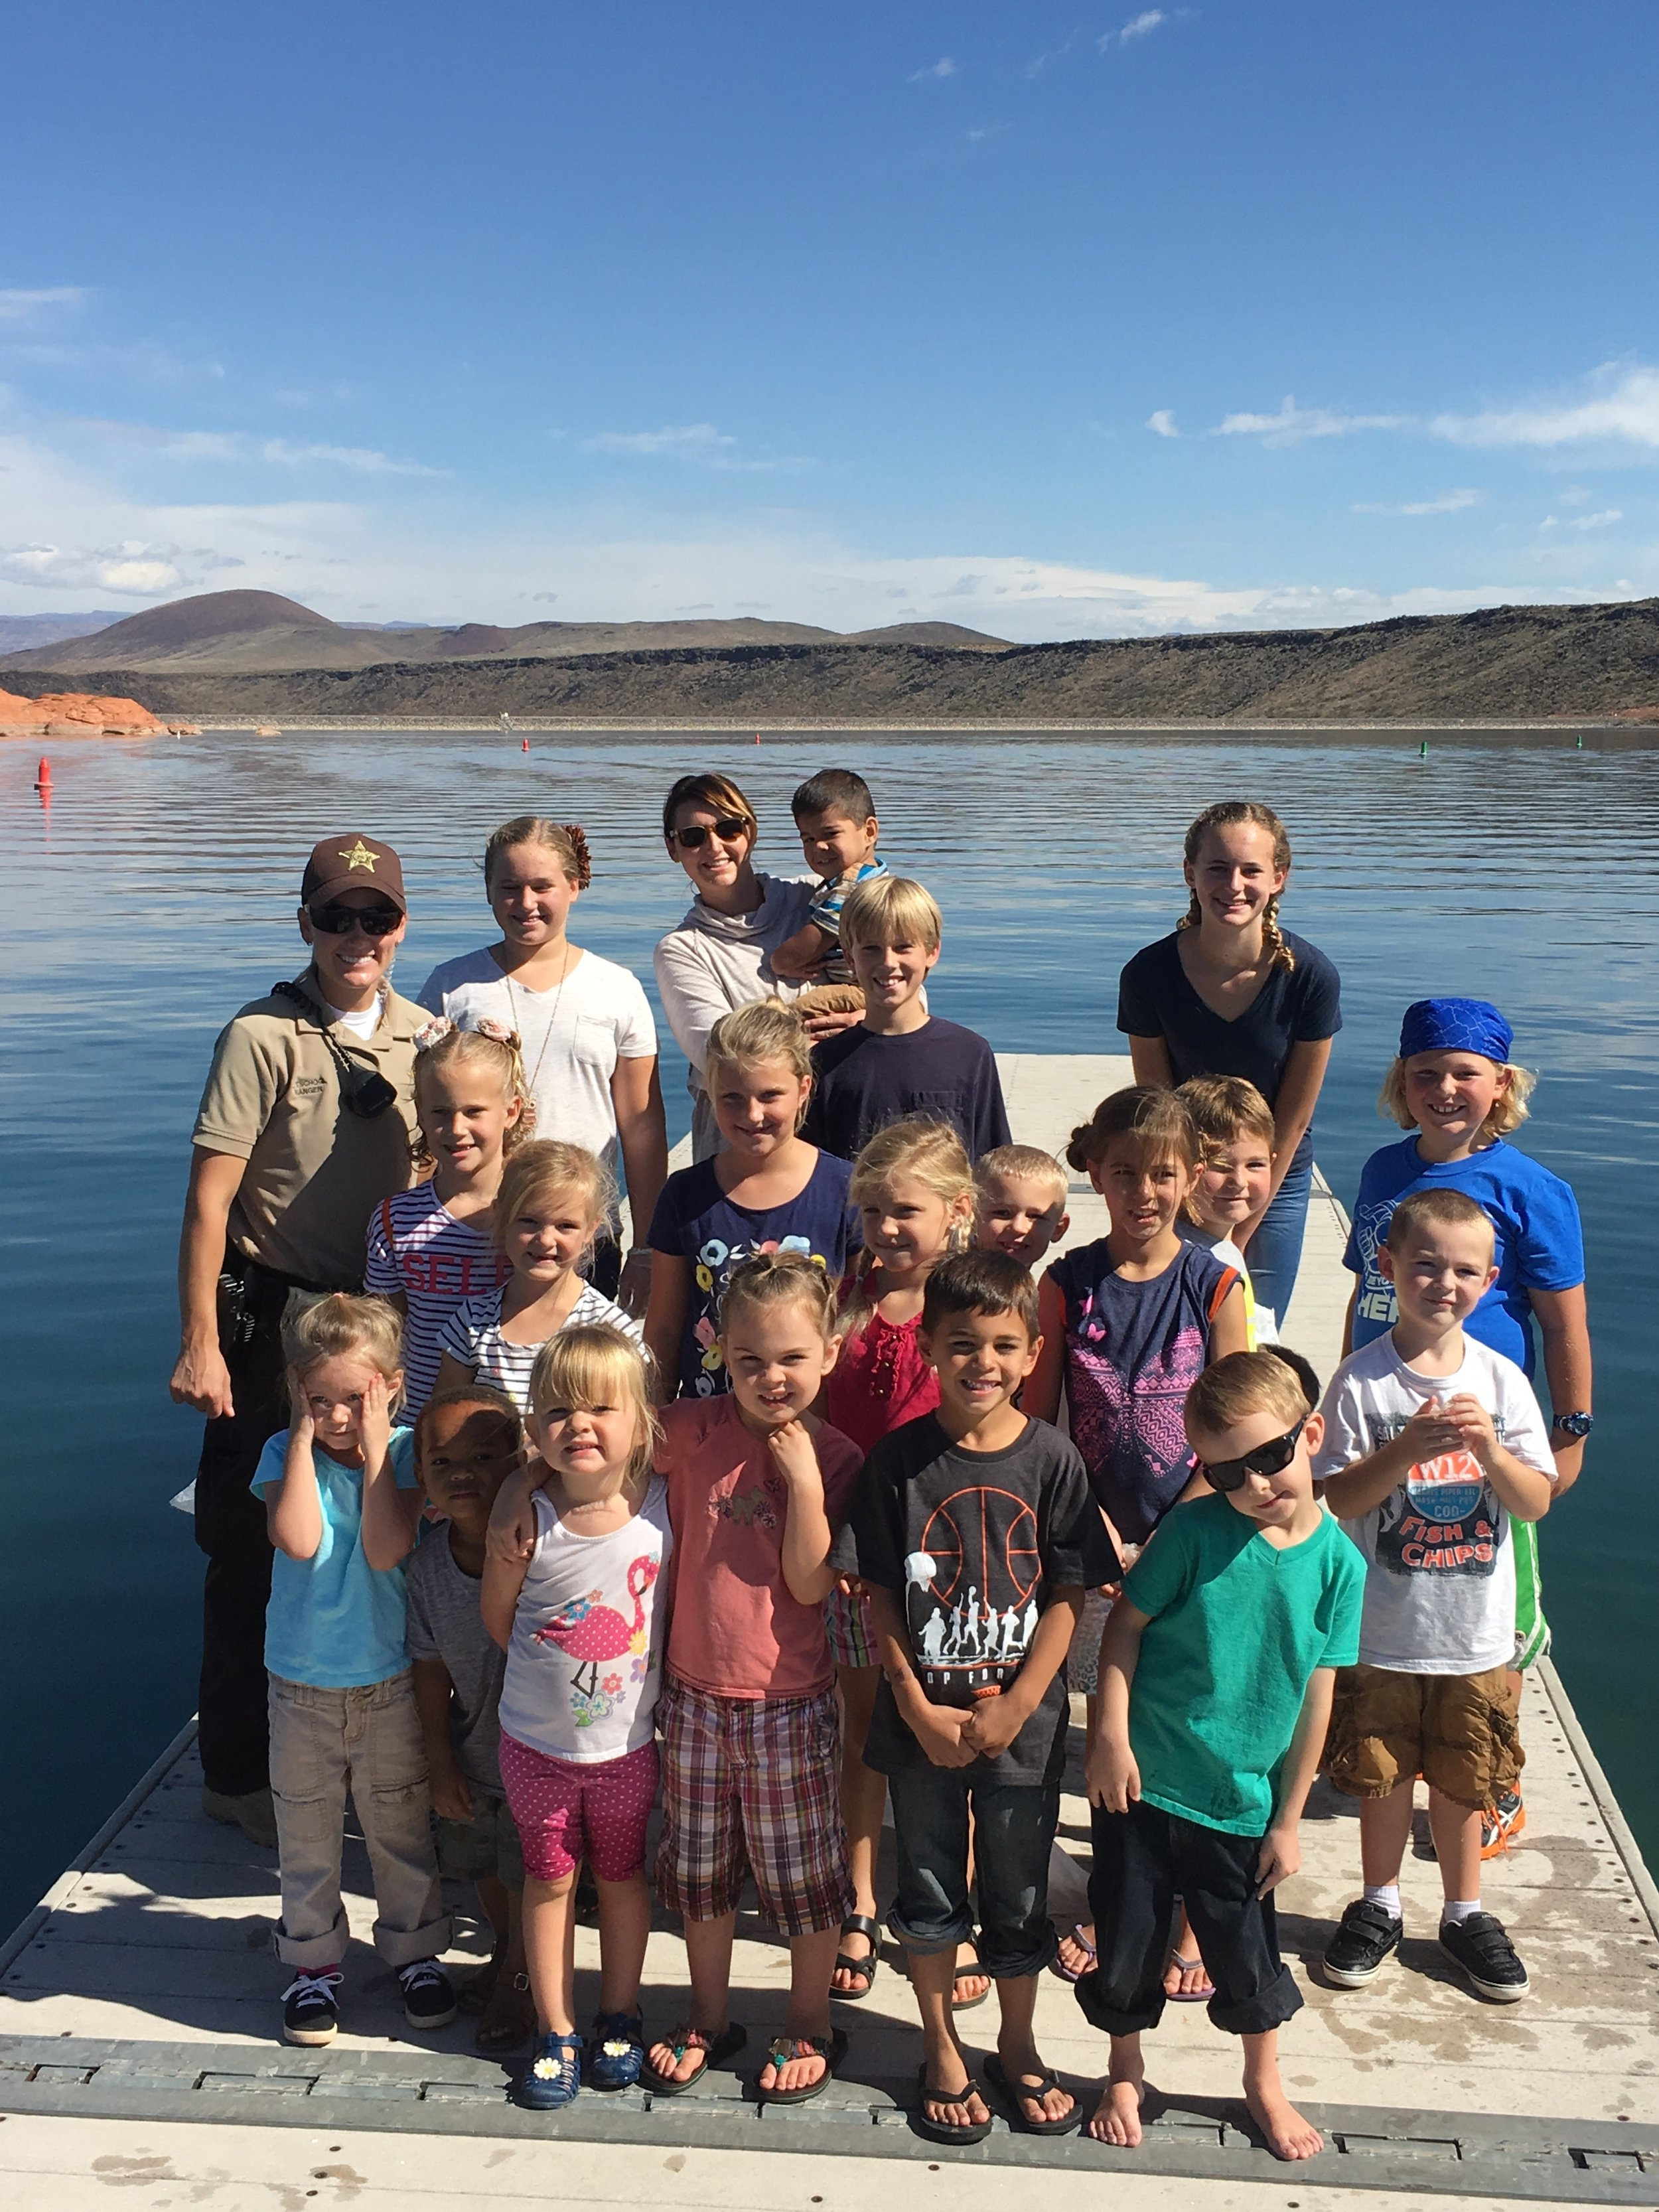 Our field trip group with a Ranger at Sand Hollow State Park.